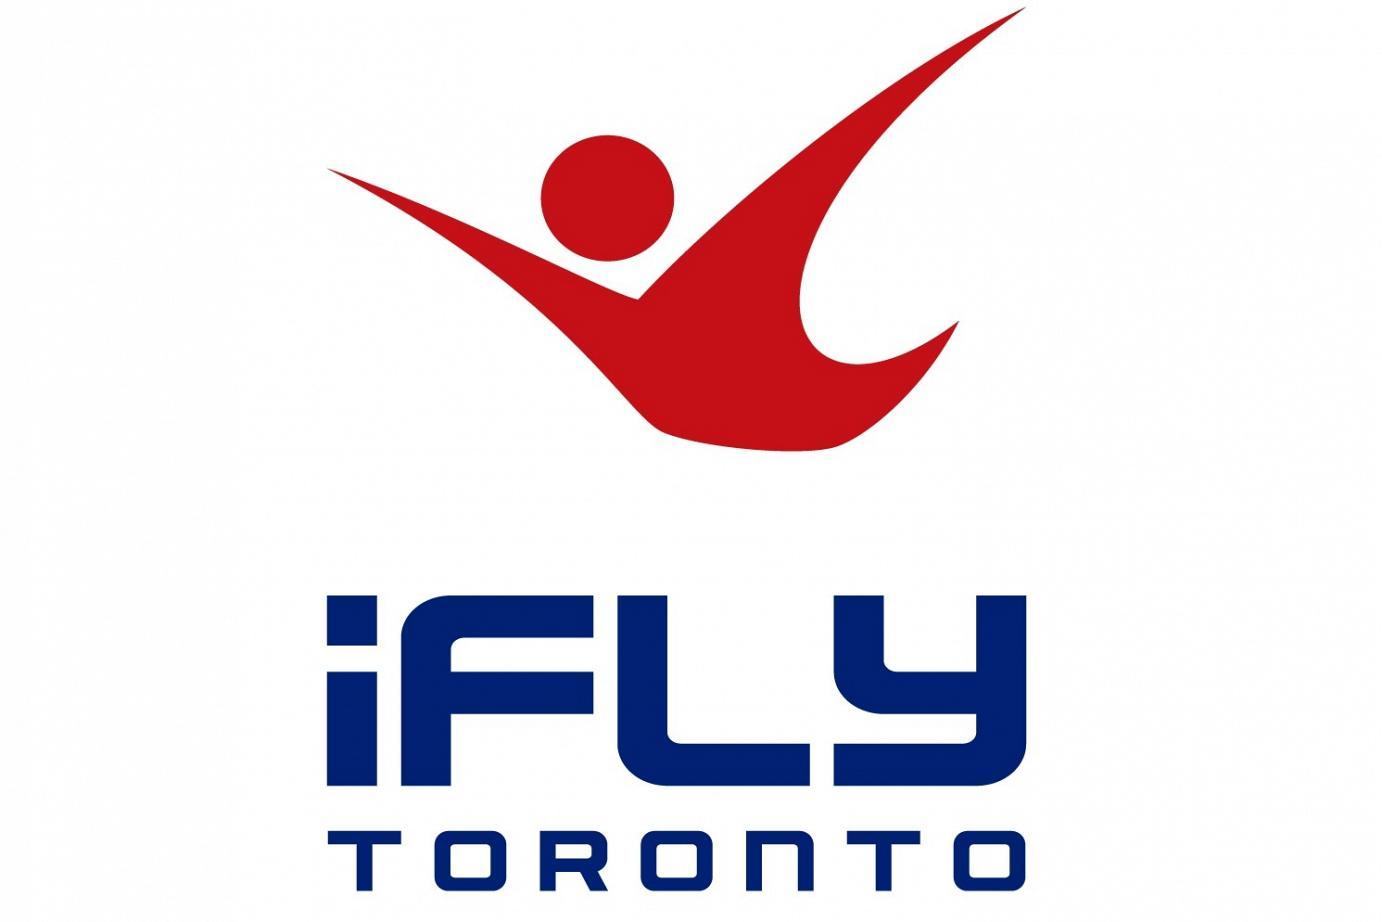 Park N' Fly offers Vancouver International Airport parking and shuttle services. View rates online by choosing times & dates you wish to be picked up & dropped off.